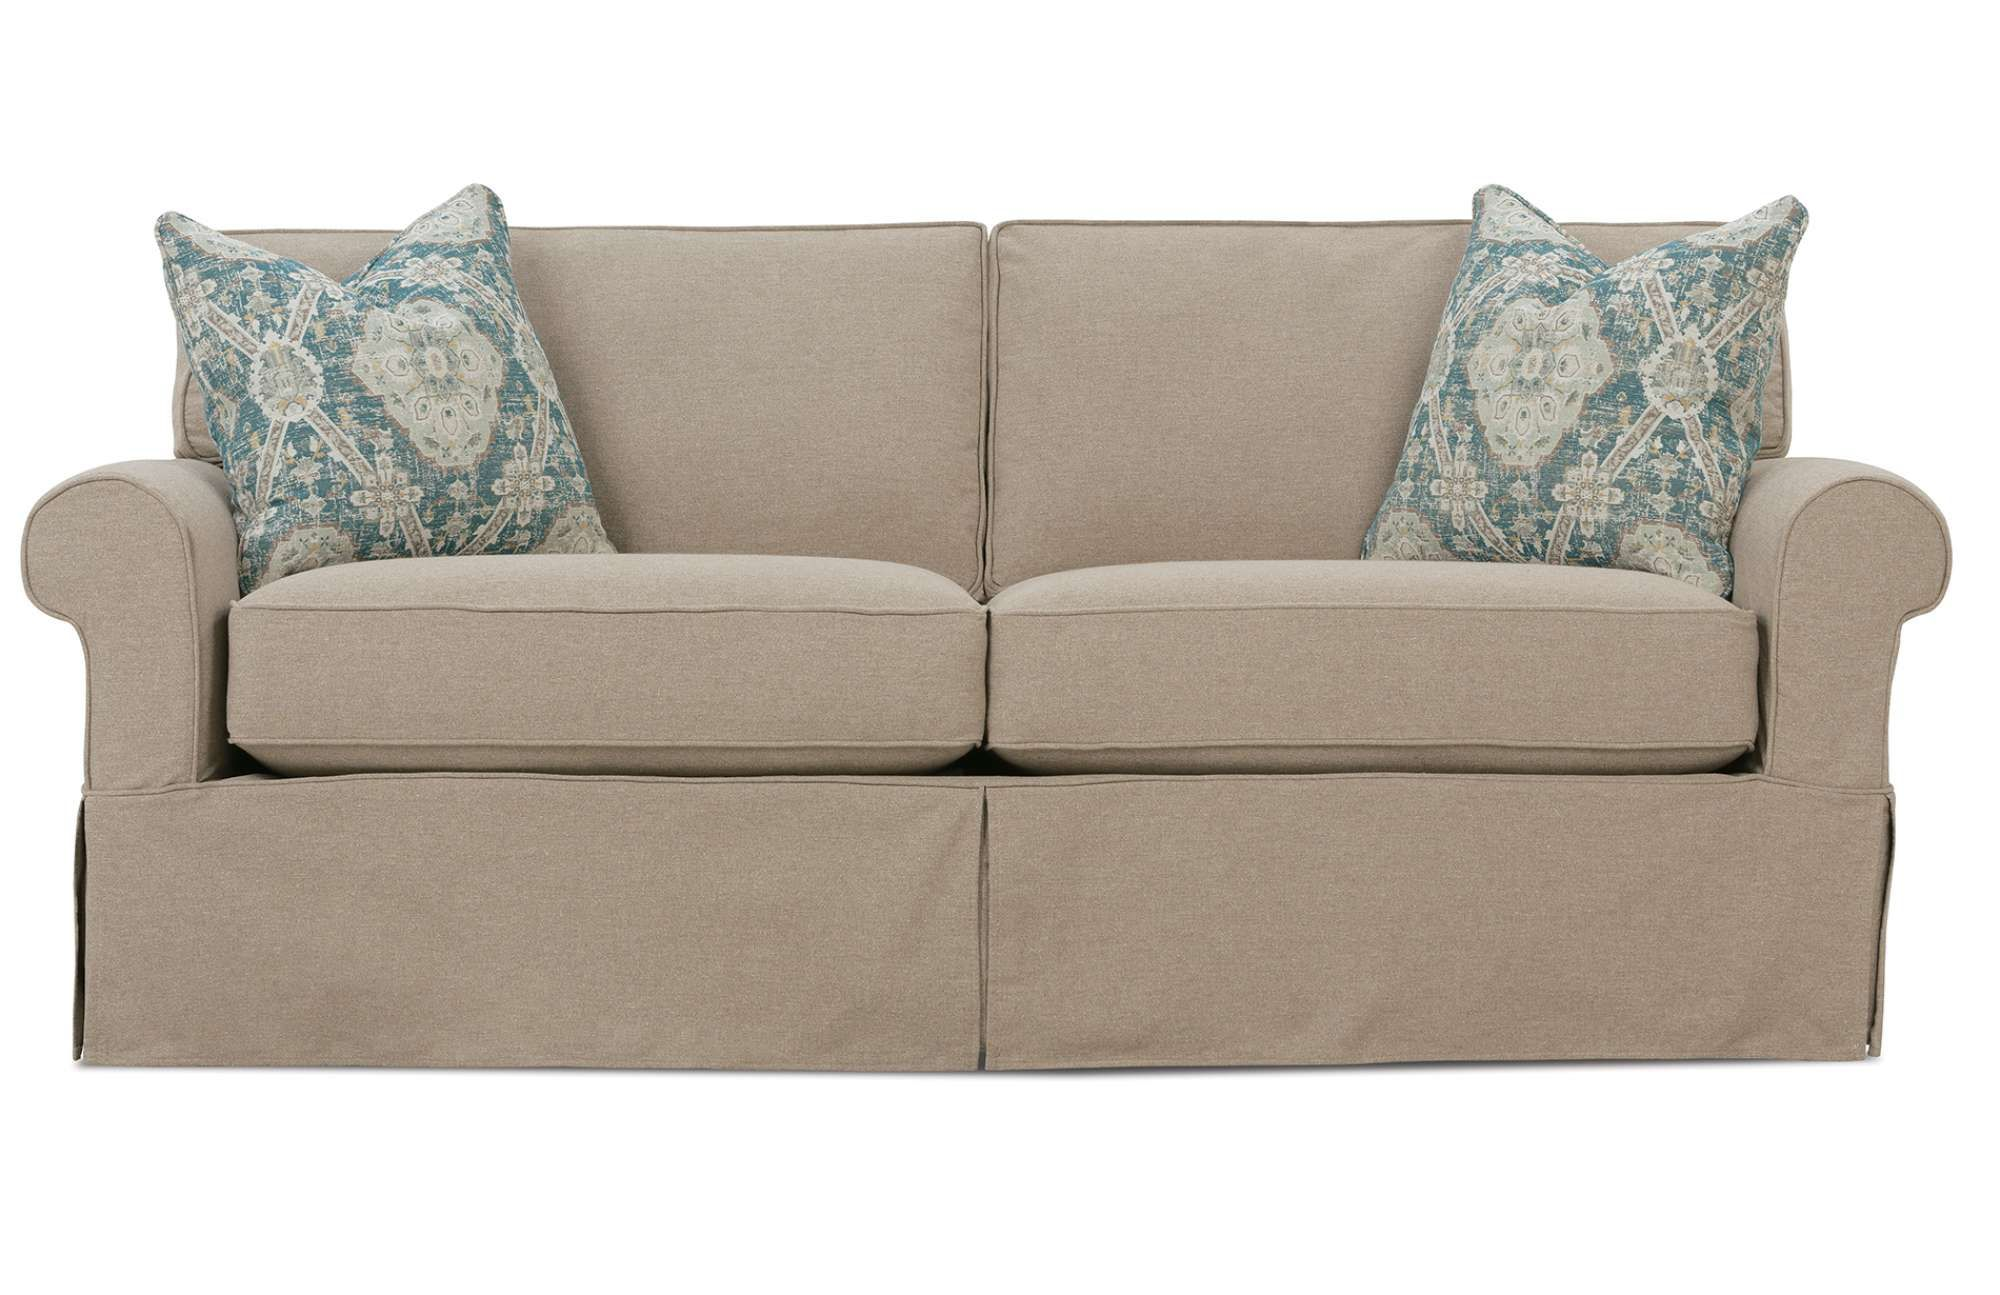 Etonnant The Nantucket Two Cushion Sofa Is A Modern Rowe Furniture Design That  Features An Upholstered Slipcover.